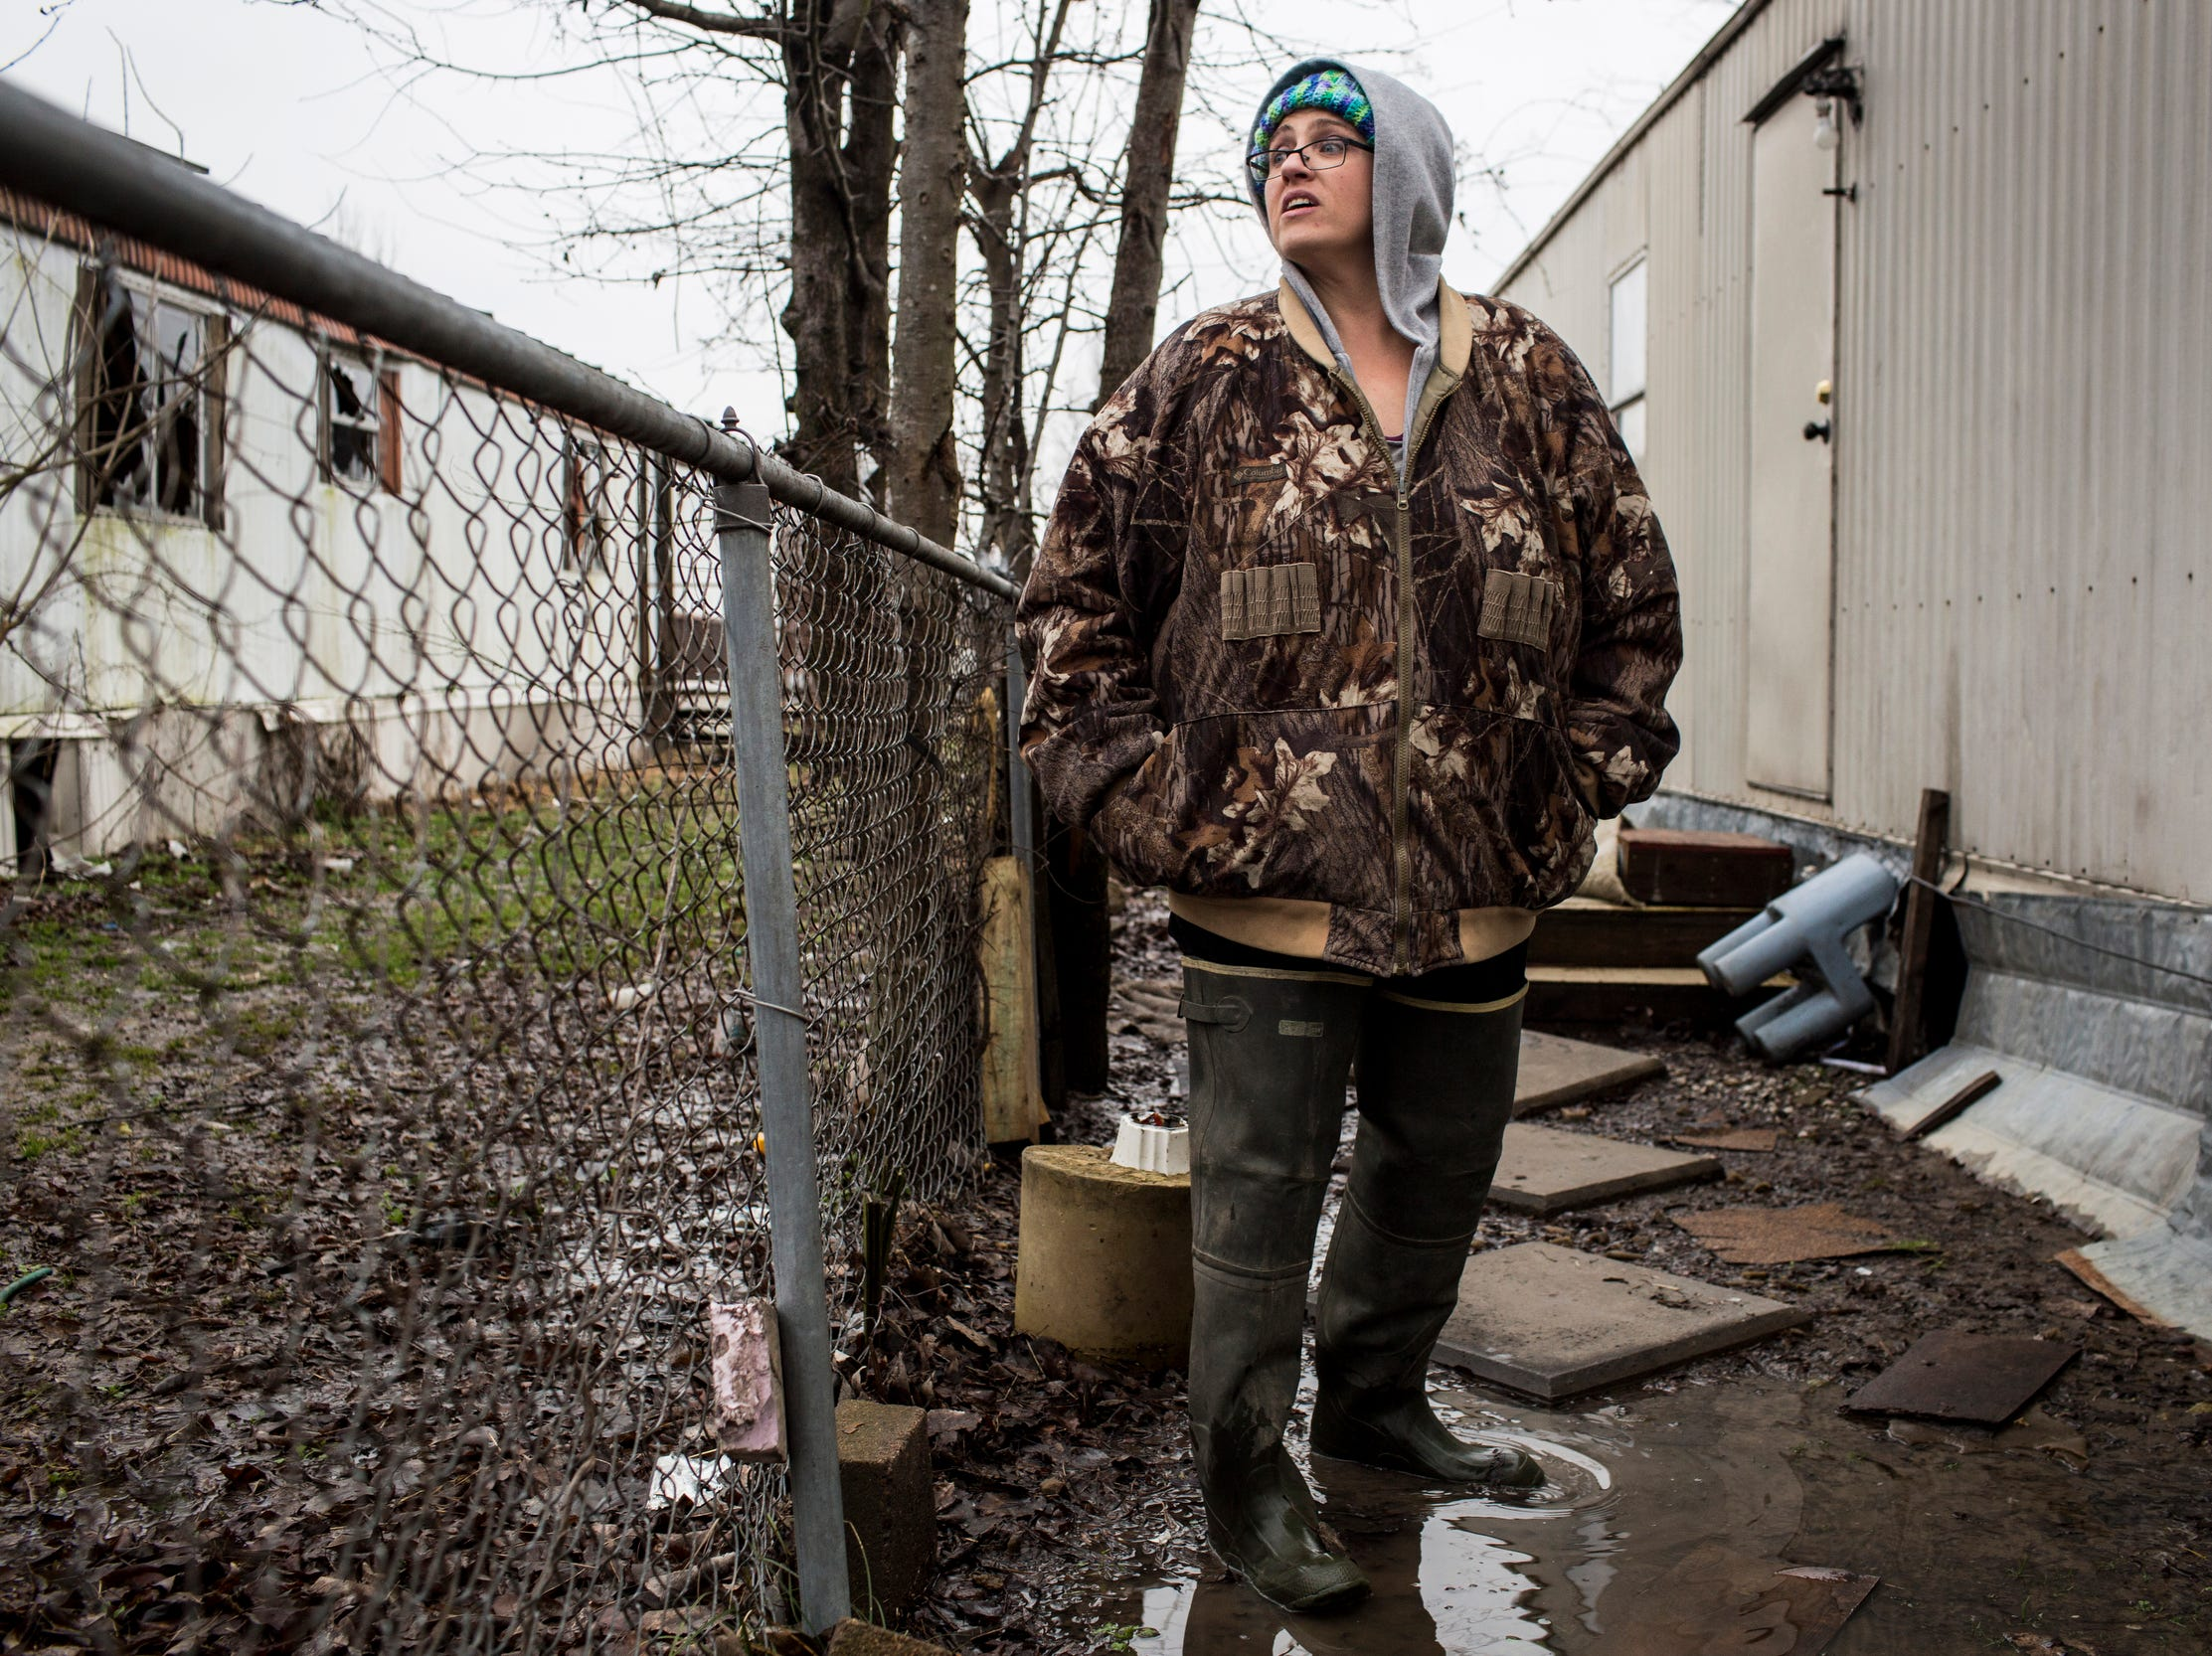 "January 23, 2019 - Debbie Camp stands near her home in Lakeshore where she lives with her children. In December of 2017, Debbie Camp, a mother of three who owns a trailer in Lakeshore, called the Arkansas Department of Environmental Quality to complain, ""Sewage is running everywhere.""  She said she's frustrated that she hasn't seen any follow-up. ""Nobody cares, just cause we're a trailer park,"" Camp said. Records obtained by The CA show that Camp's complaint was received. But, the Arkansas Department of Environmental Quality said they have no inspection report resulting from her complaint, though they believe the issue was related to a residential line as opposed to the main sewer."